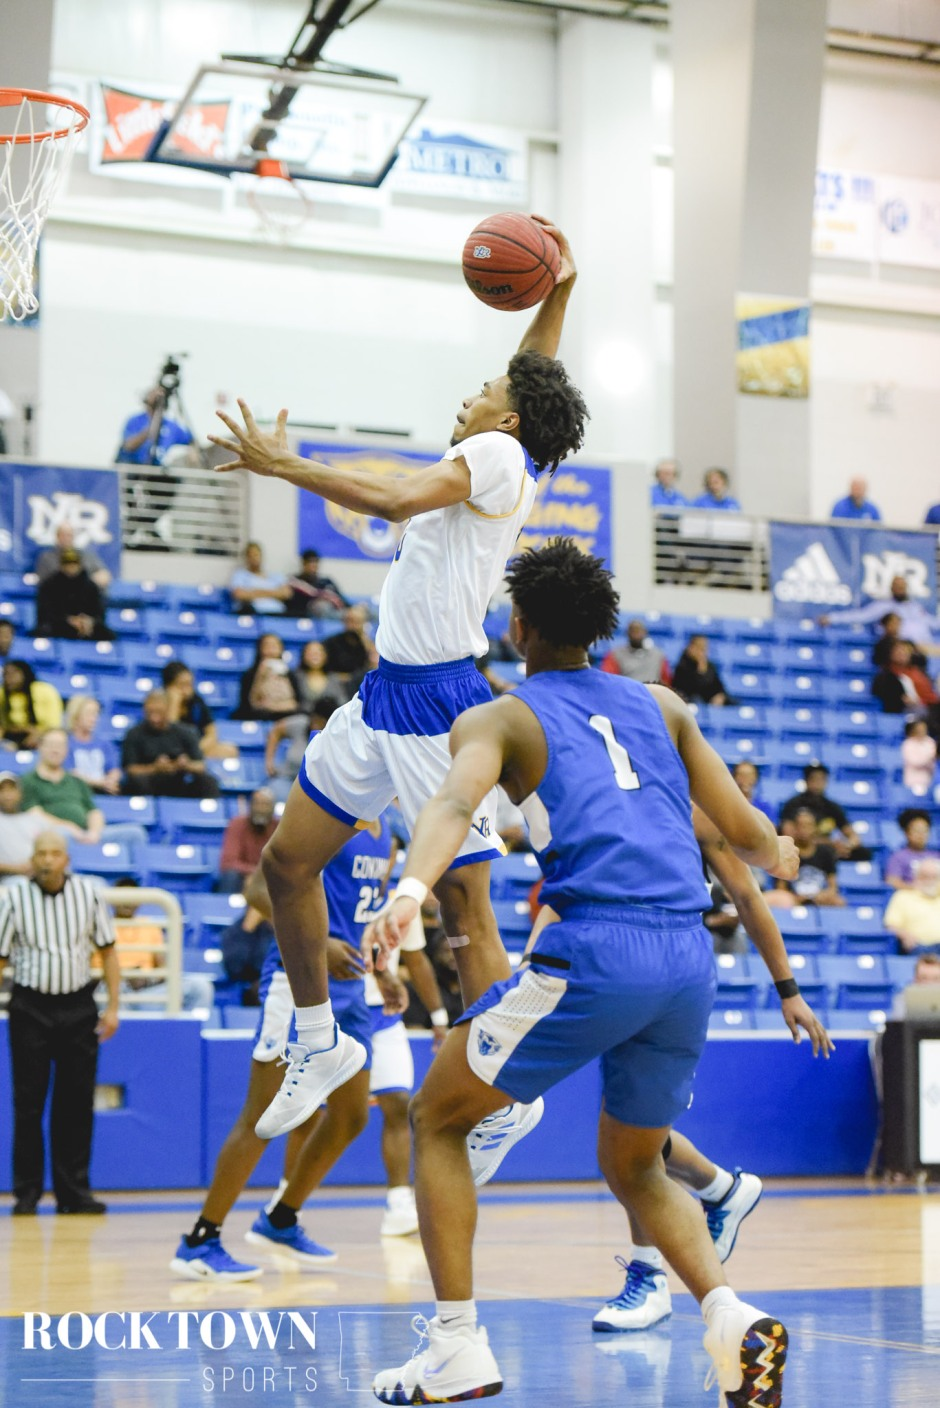 Conway_NLR_bball19(i)-56